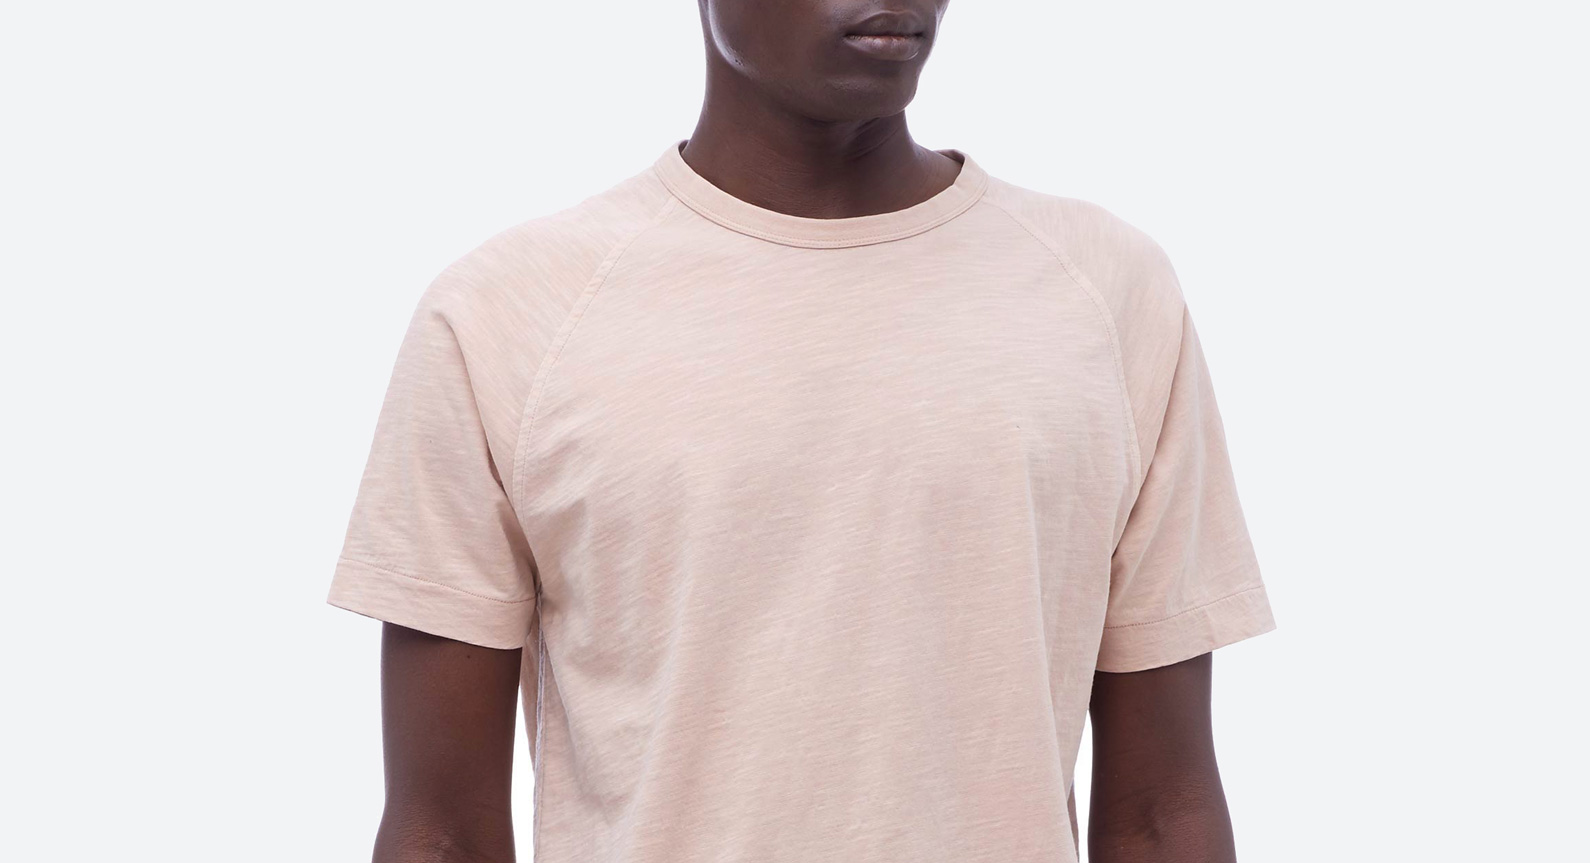 10 T-Shirts To Top Up Your Summer Wardrobe